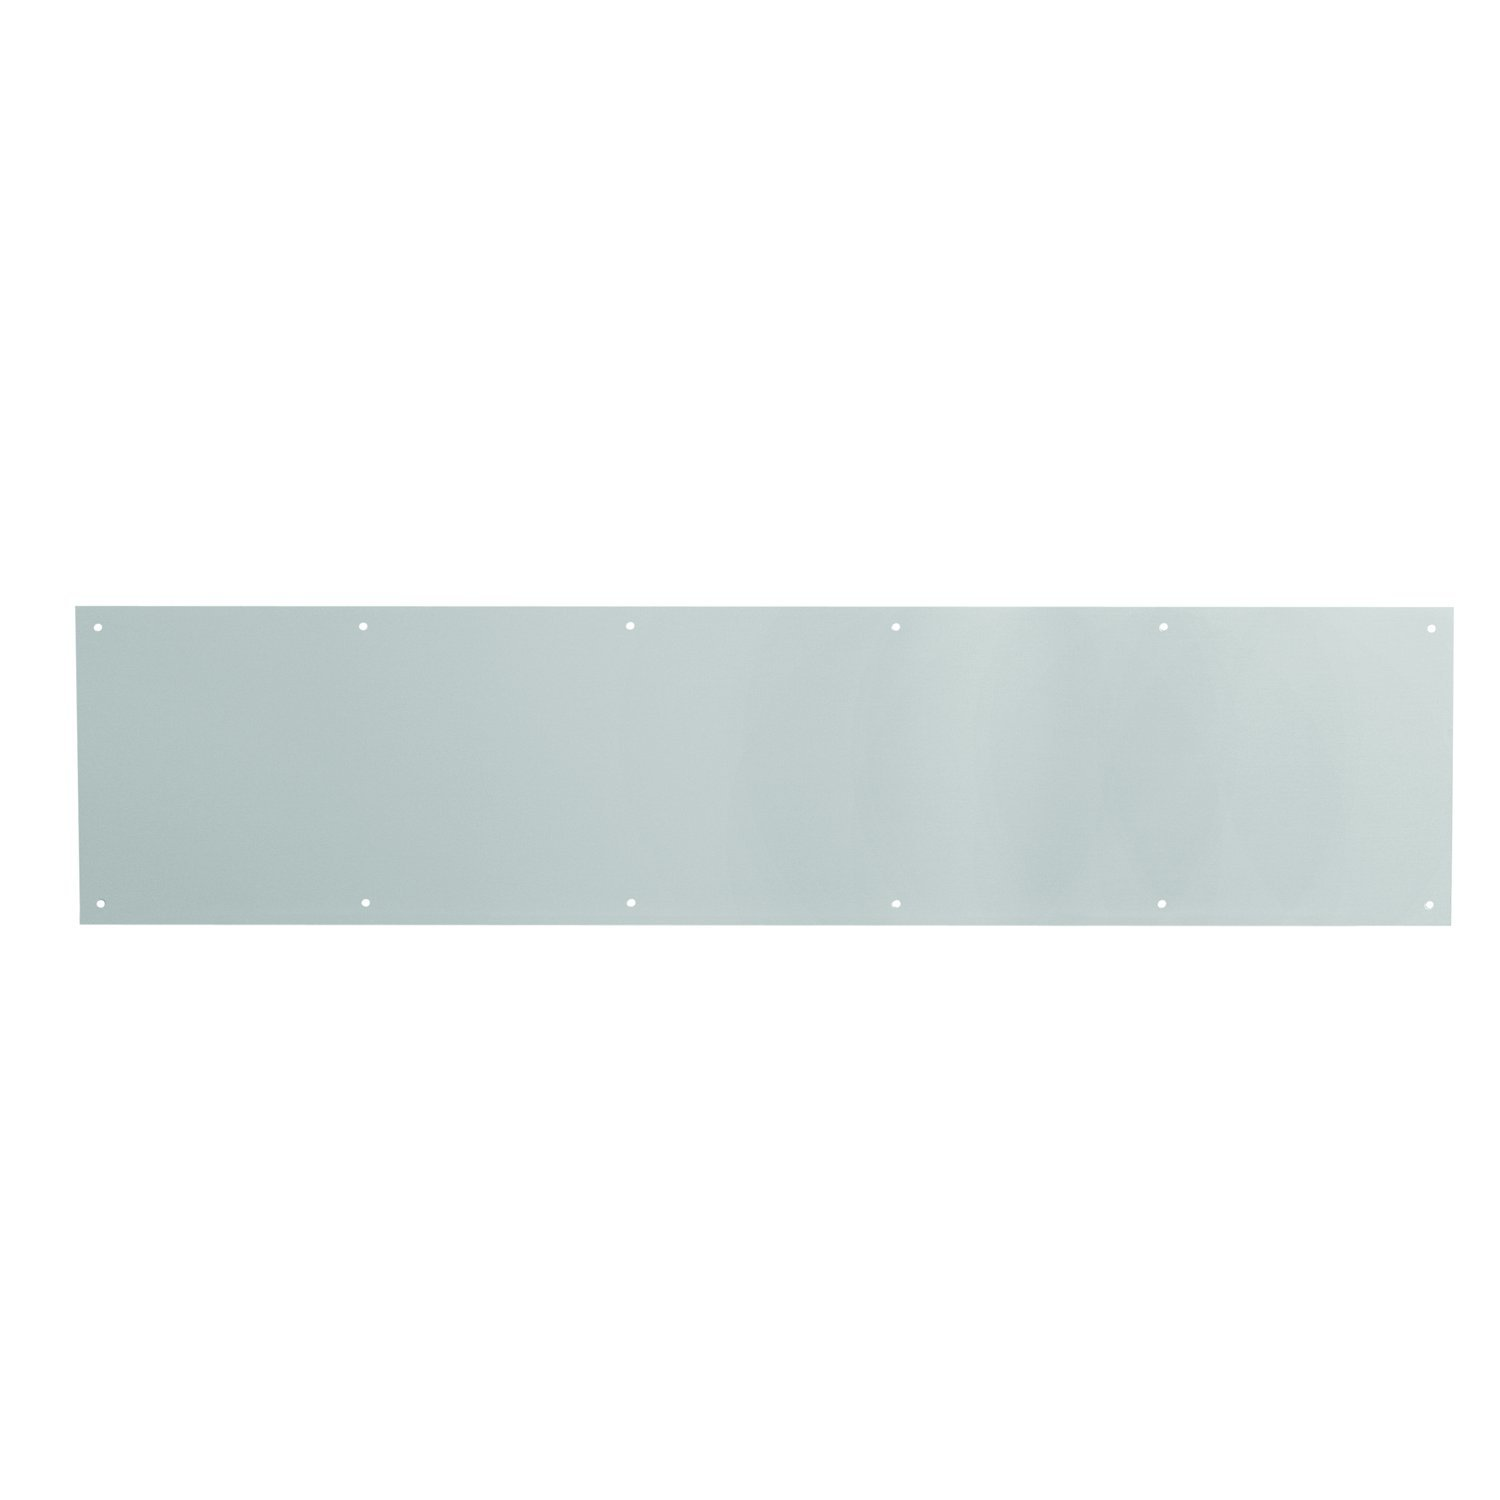 Prime-Line MP4754 Kick Plate, 8 x 36-inches, Satin Aluminum, Pack of 1 8 x